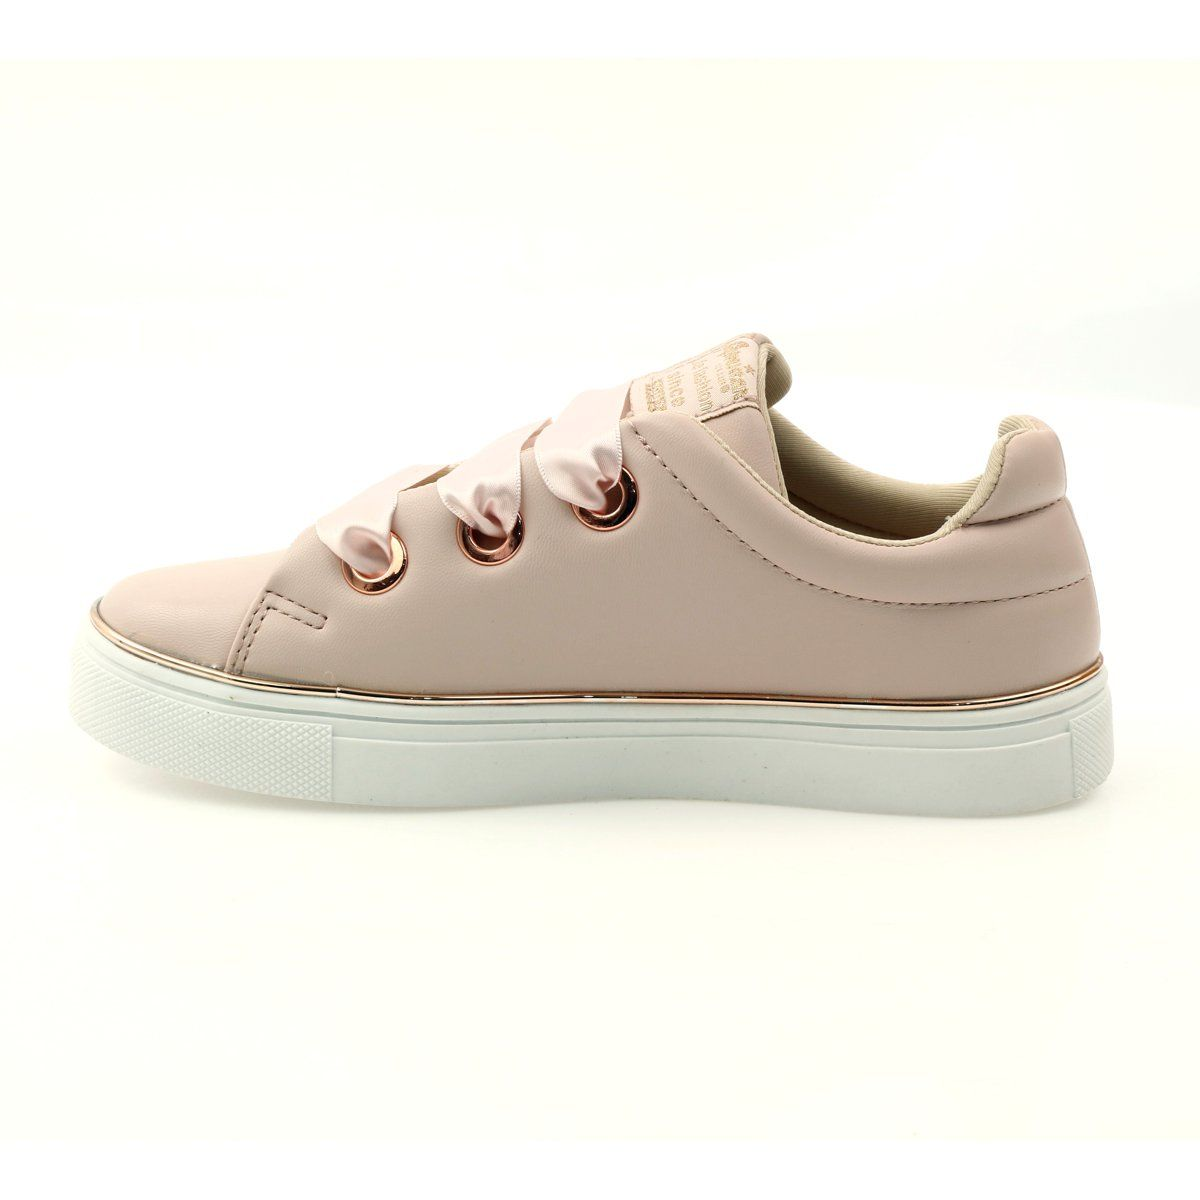 American Club Satin Sneakers American Lace 17508 Pink Trainers Women Kid Shoes Summer Shoes